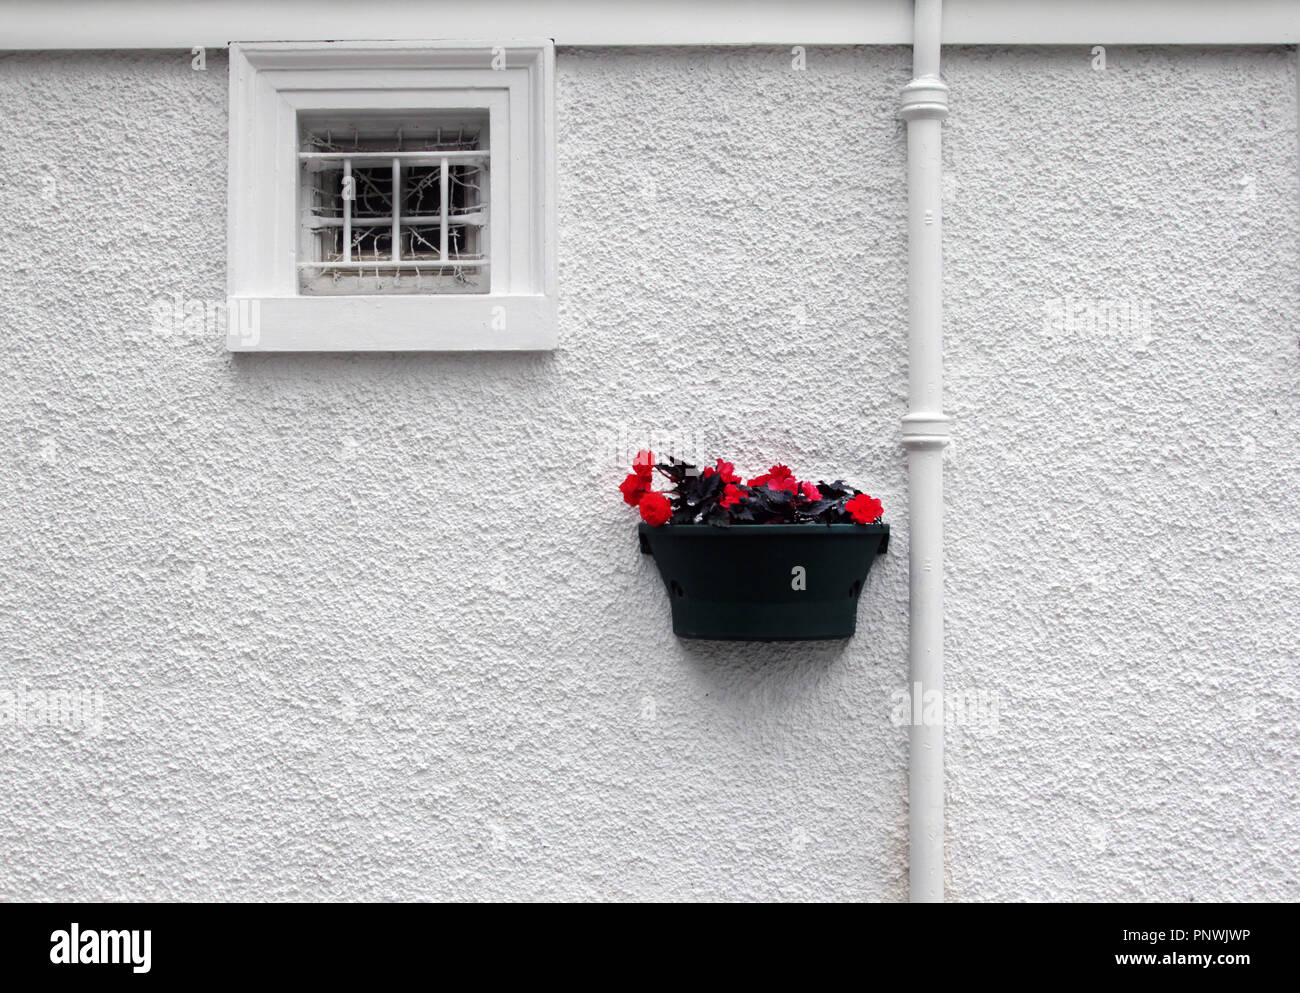 A very white wall with a drainpipe running down it, a small window with a box of bright red flowers! Very arty! - Stock Image